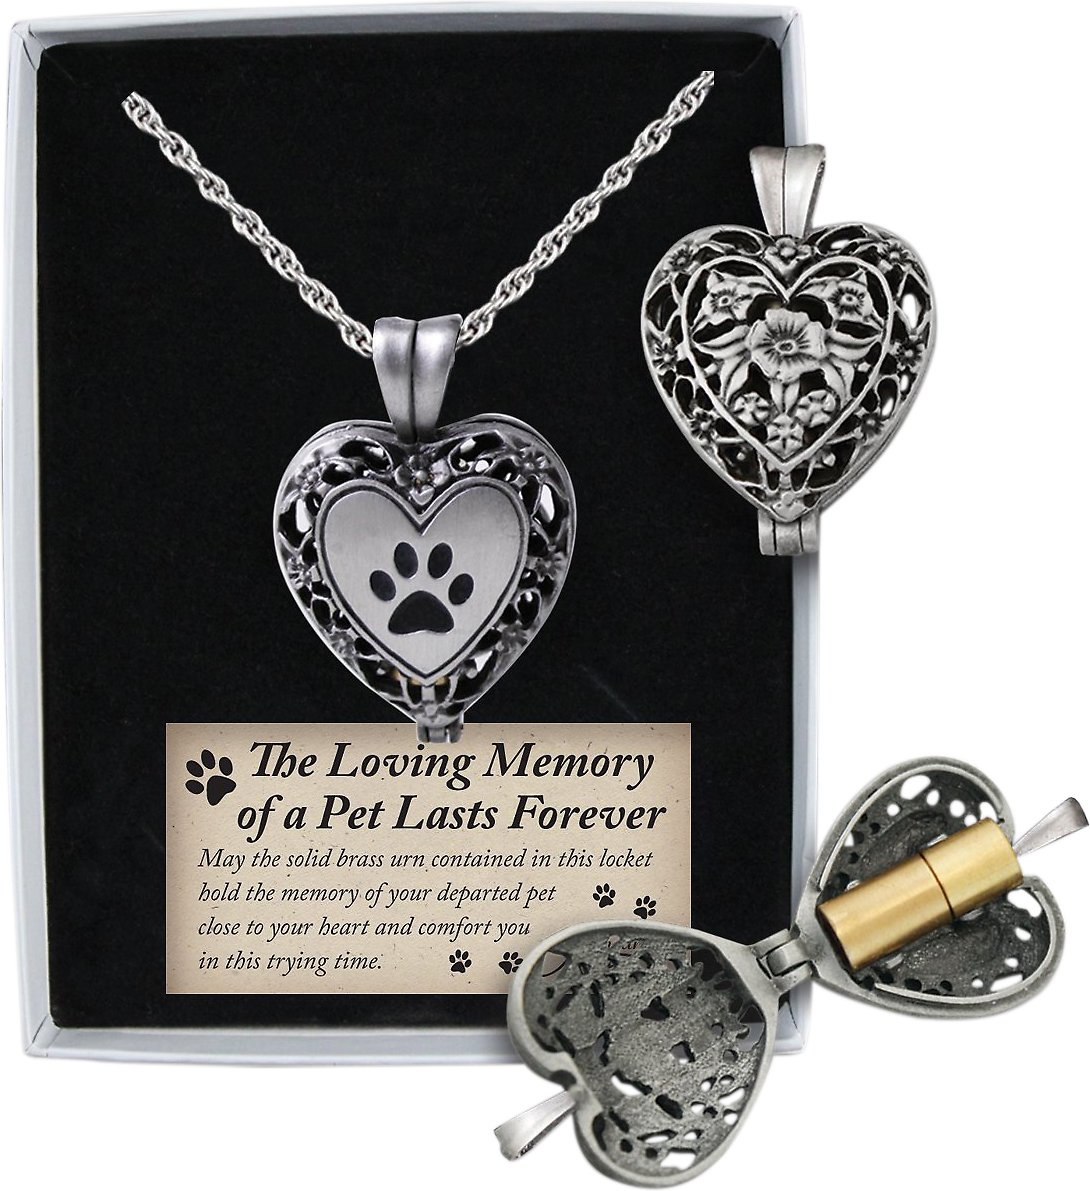 plated animal on cheap deals com paw lockets blue with alibaba line prints charity shopping gold find shaped at chain locket from get displayed heart print the cross quotations guides silver